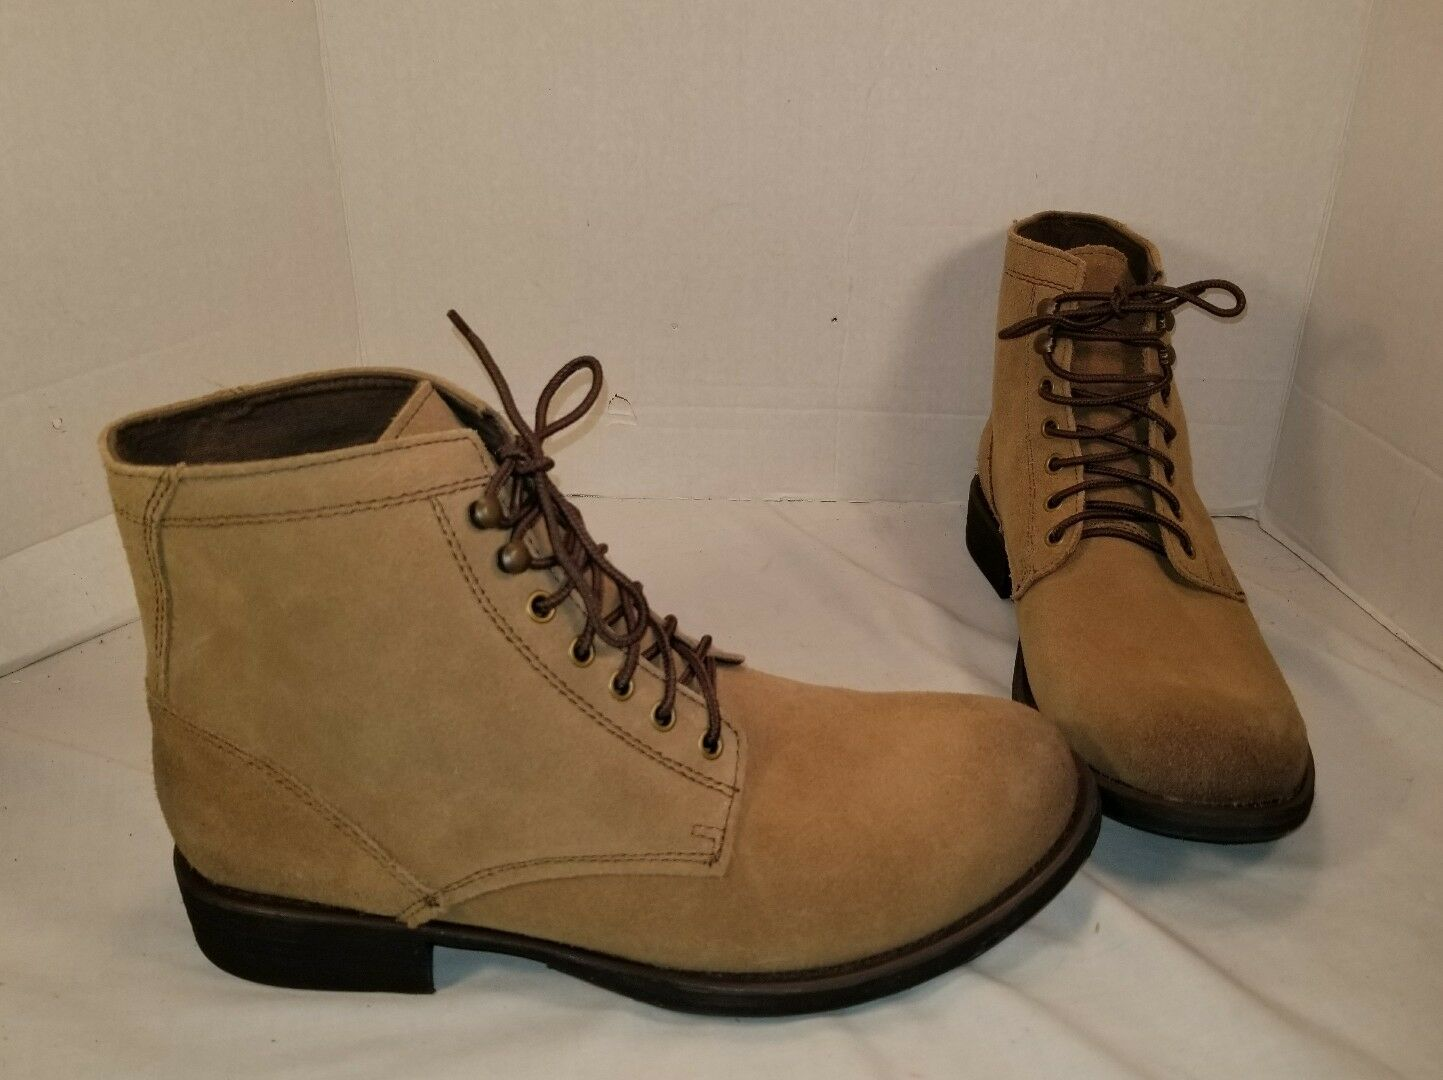 NEW EASTLAND AMERICAN EAGLE ASHLAND TAN SUEDE Stiefel US herren 11